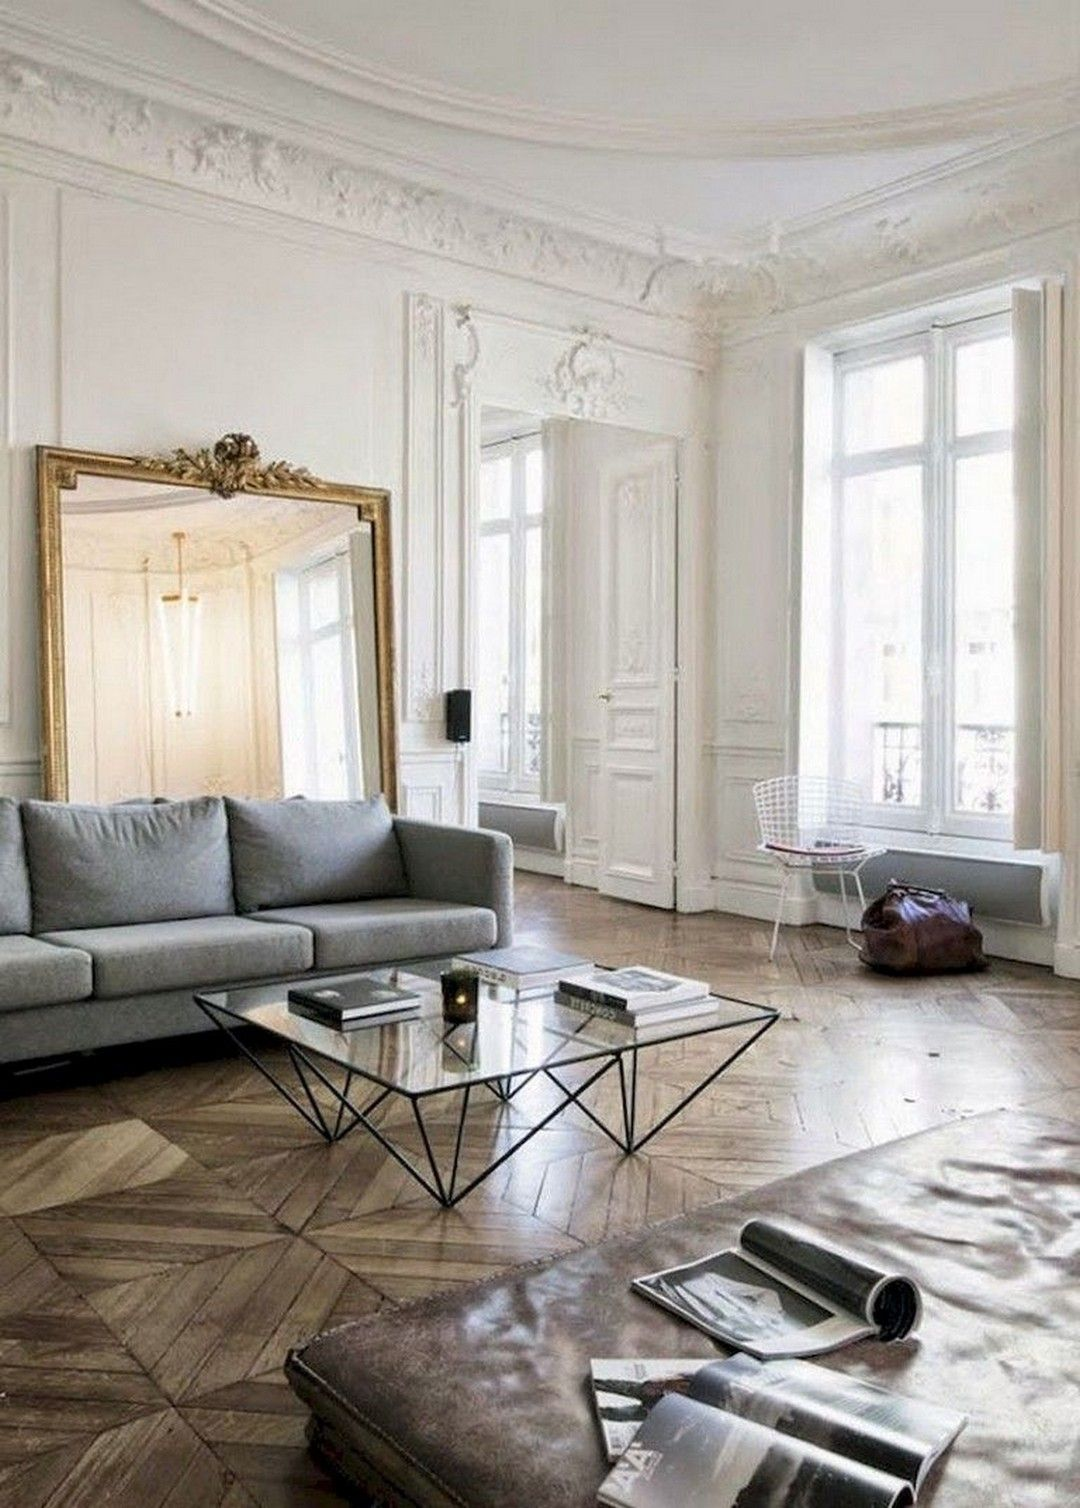 A Dreamy Parisian Style Apartment in 2020 | Chic apartment ...